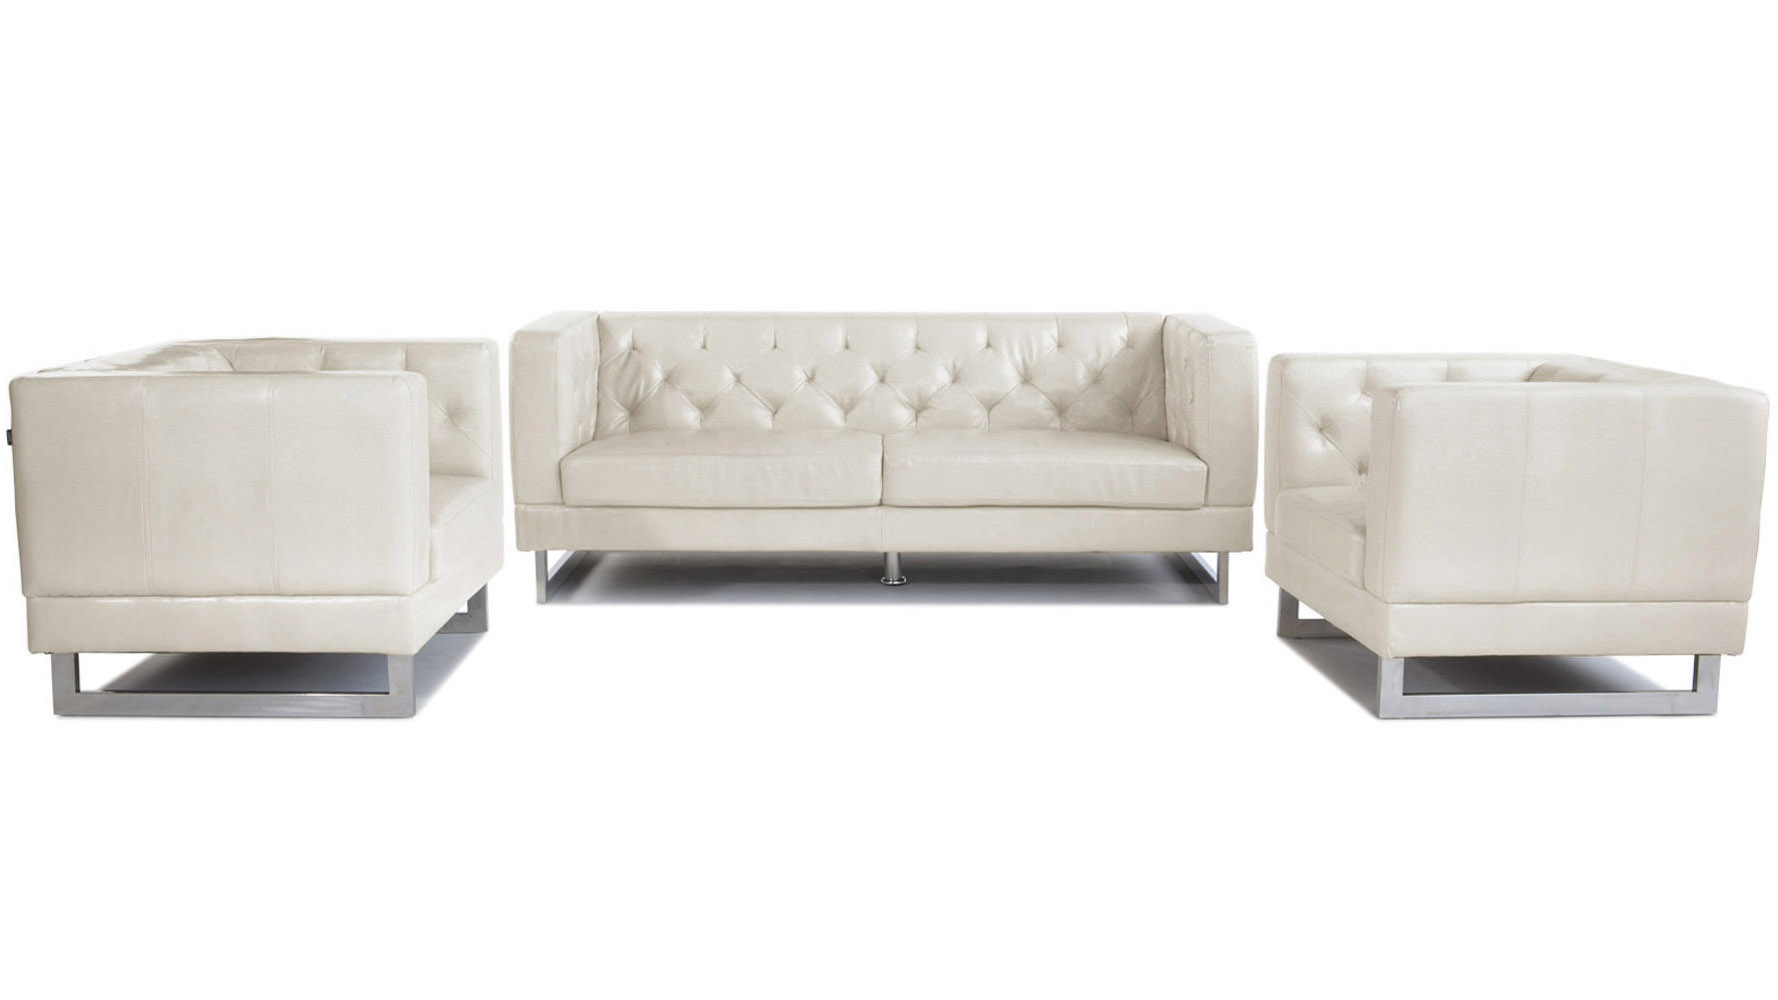 cream tufted sofa coaster 2 piece fabric on tufted sofa set cream thesofa. Black Bedroom Furniture Sets. Home Design Ideas